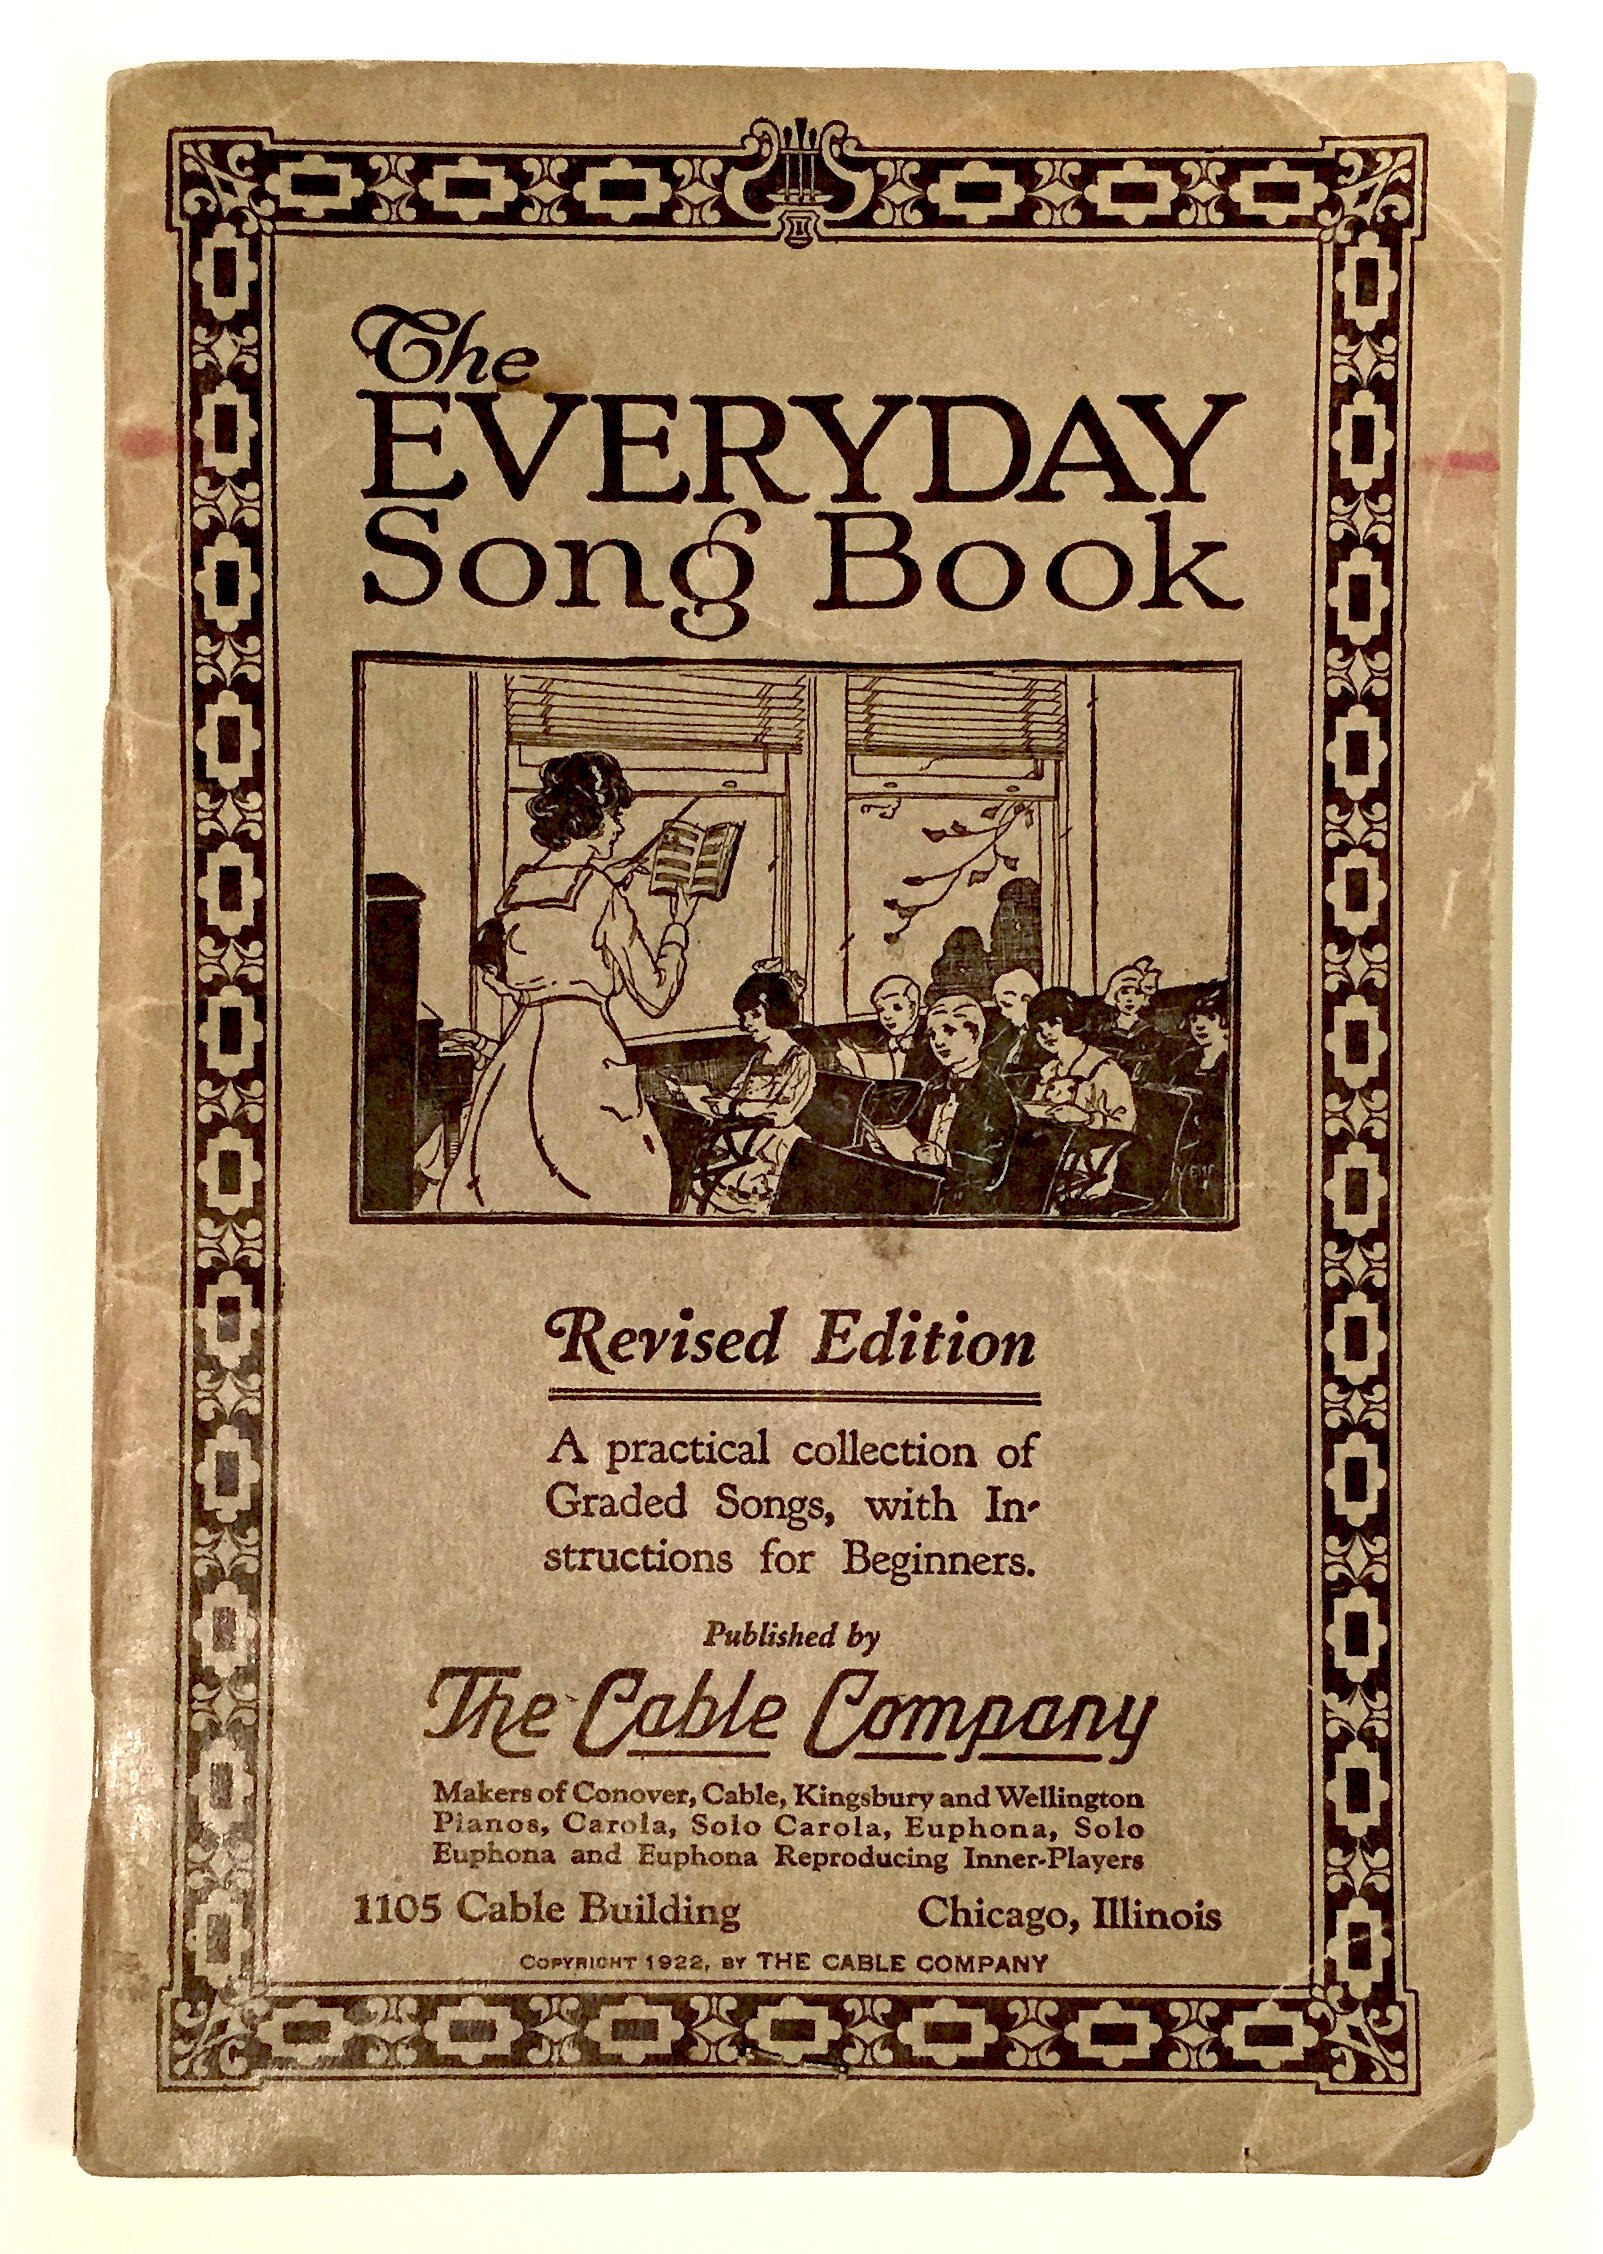 A 1922 book that contained the (unauthorized?) lyrics.